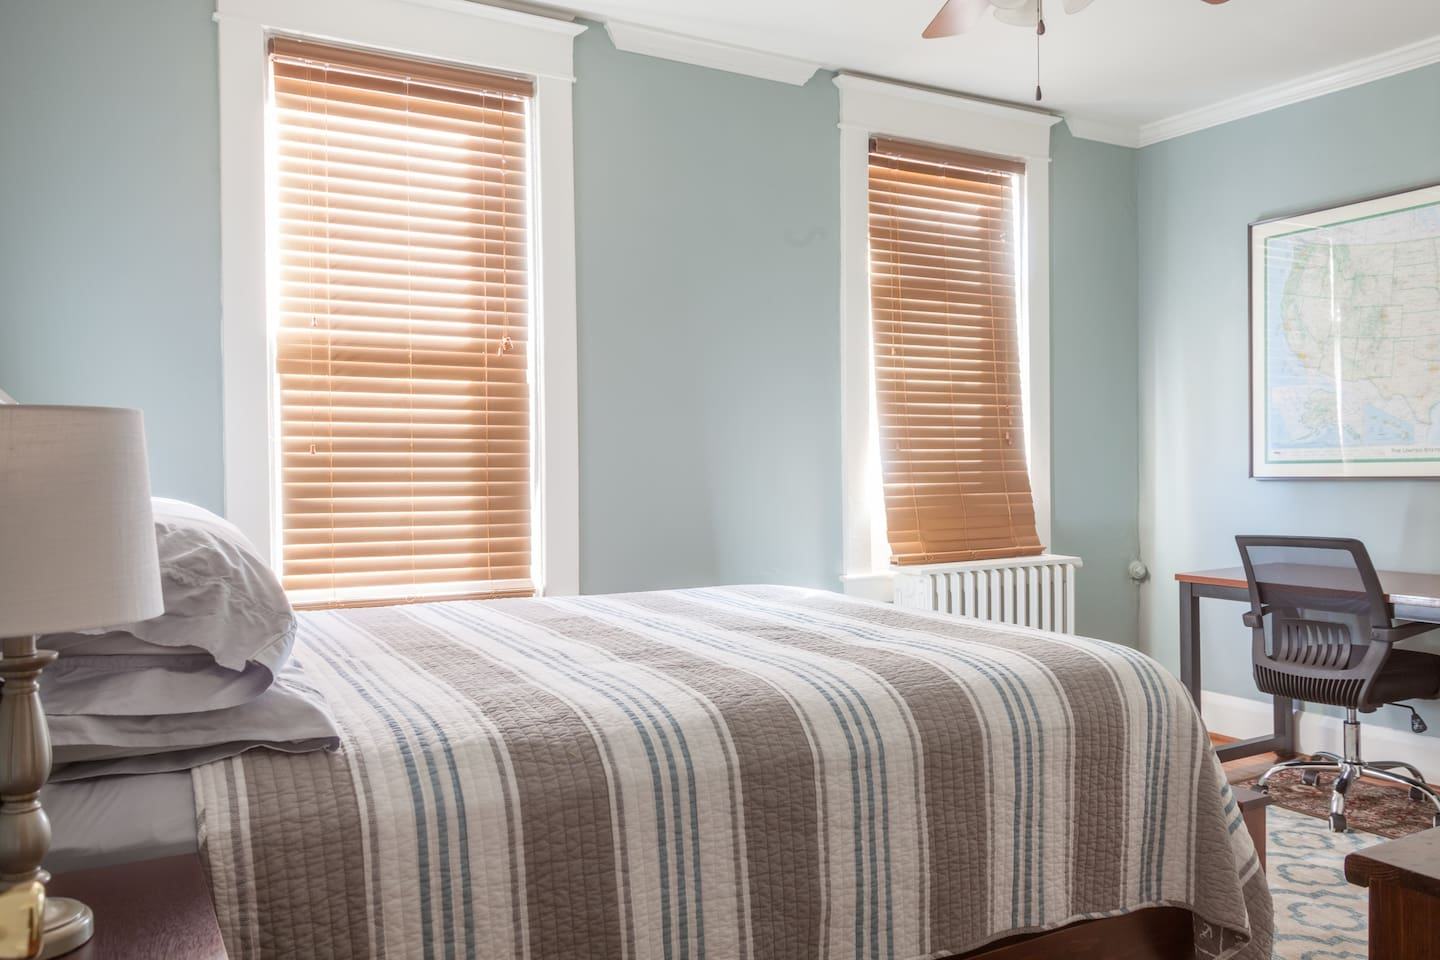 Renovated guest bedroom with comfortable bed, desk, closet, and coffee maker.